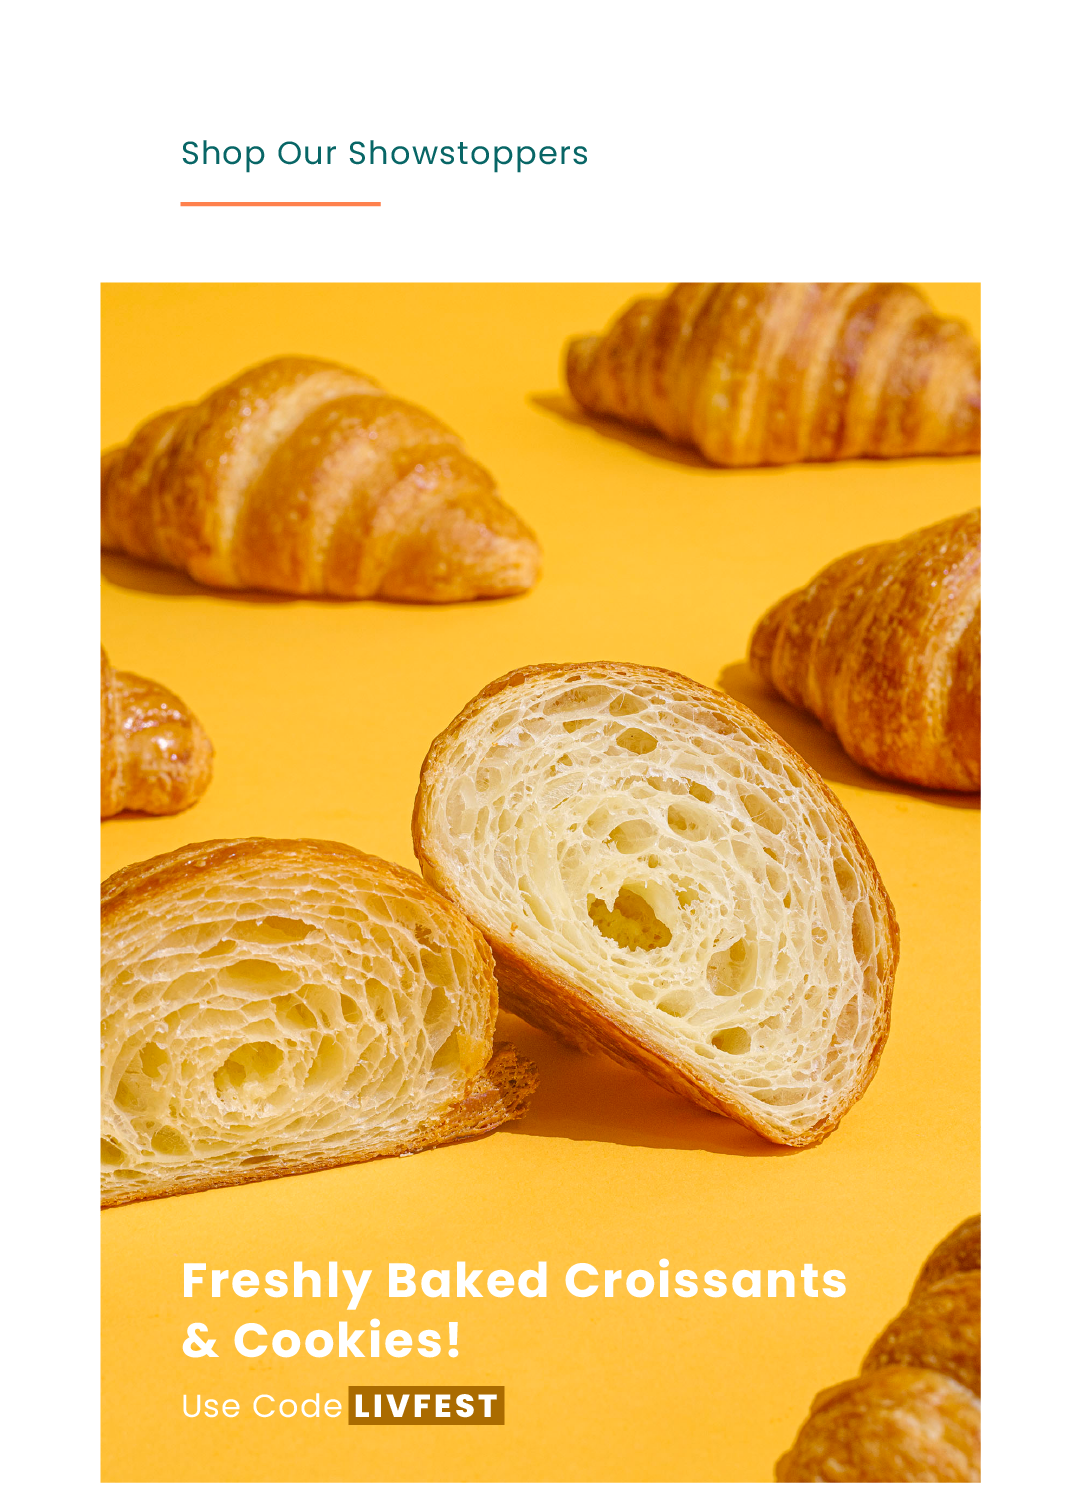 Crispy, melt-in-your-mouth Croissants and Cookies. Freshly Baked for amazing flavour. Try them with our Dessert Spreads & Sauces for a match made in heaven!